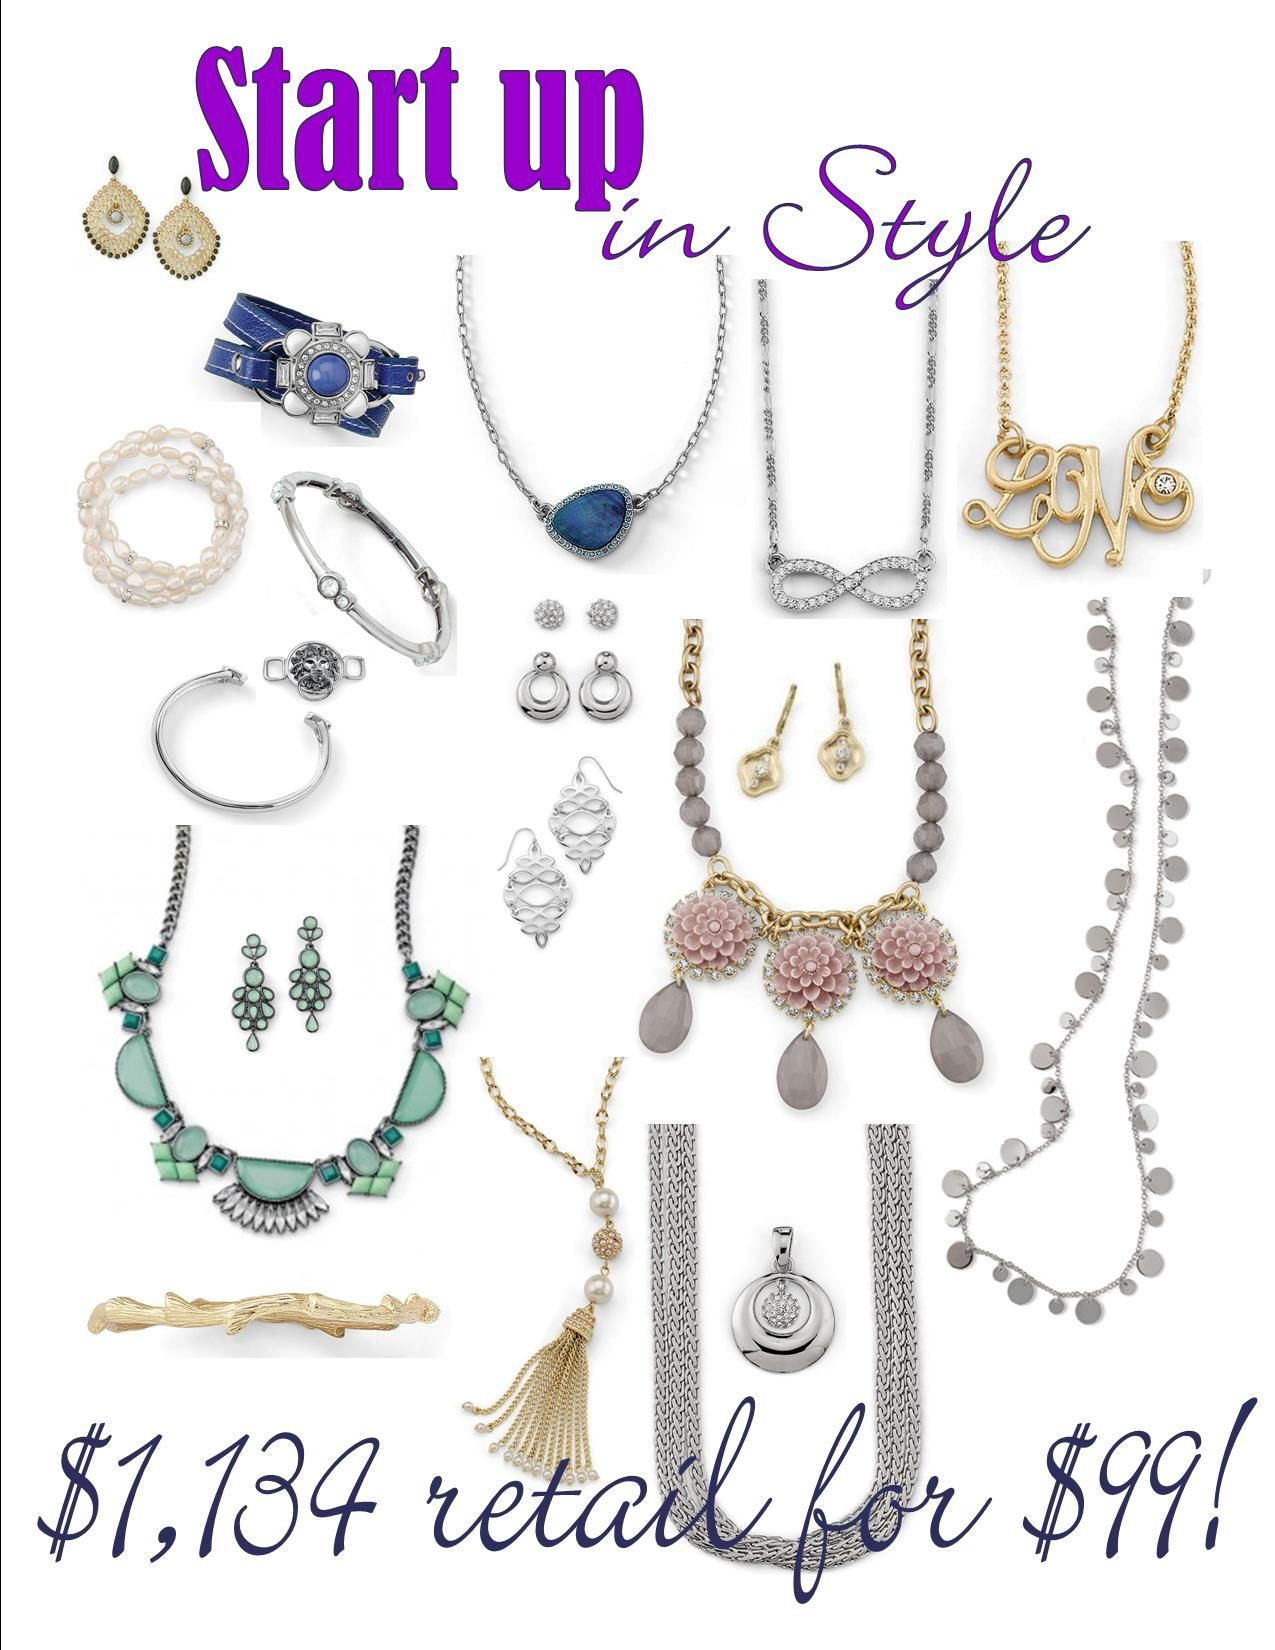 Contact me for more details on this amazing offer! liasophia.com/twl  OR ON FB Tracy's Bling lia style YEP, this can all be yours to start YOUR OWN BUSINESS!!!